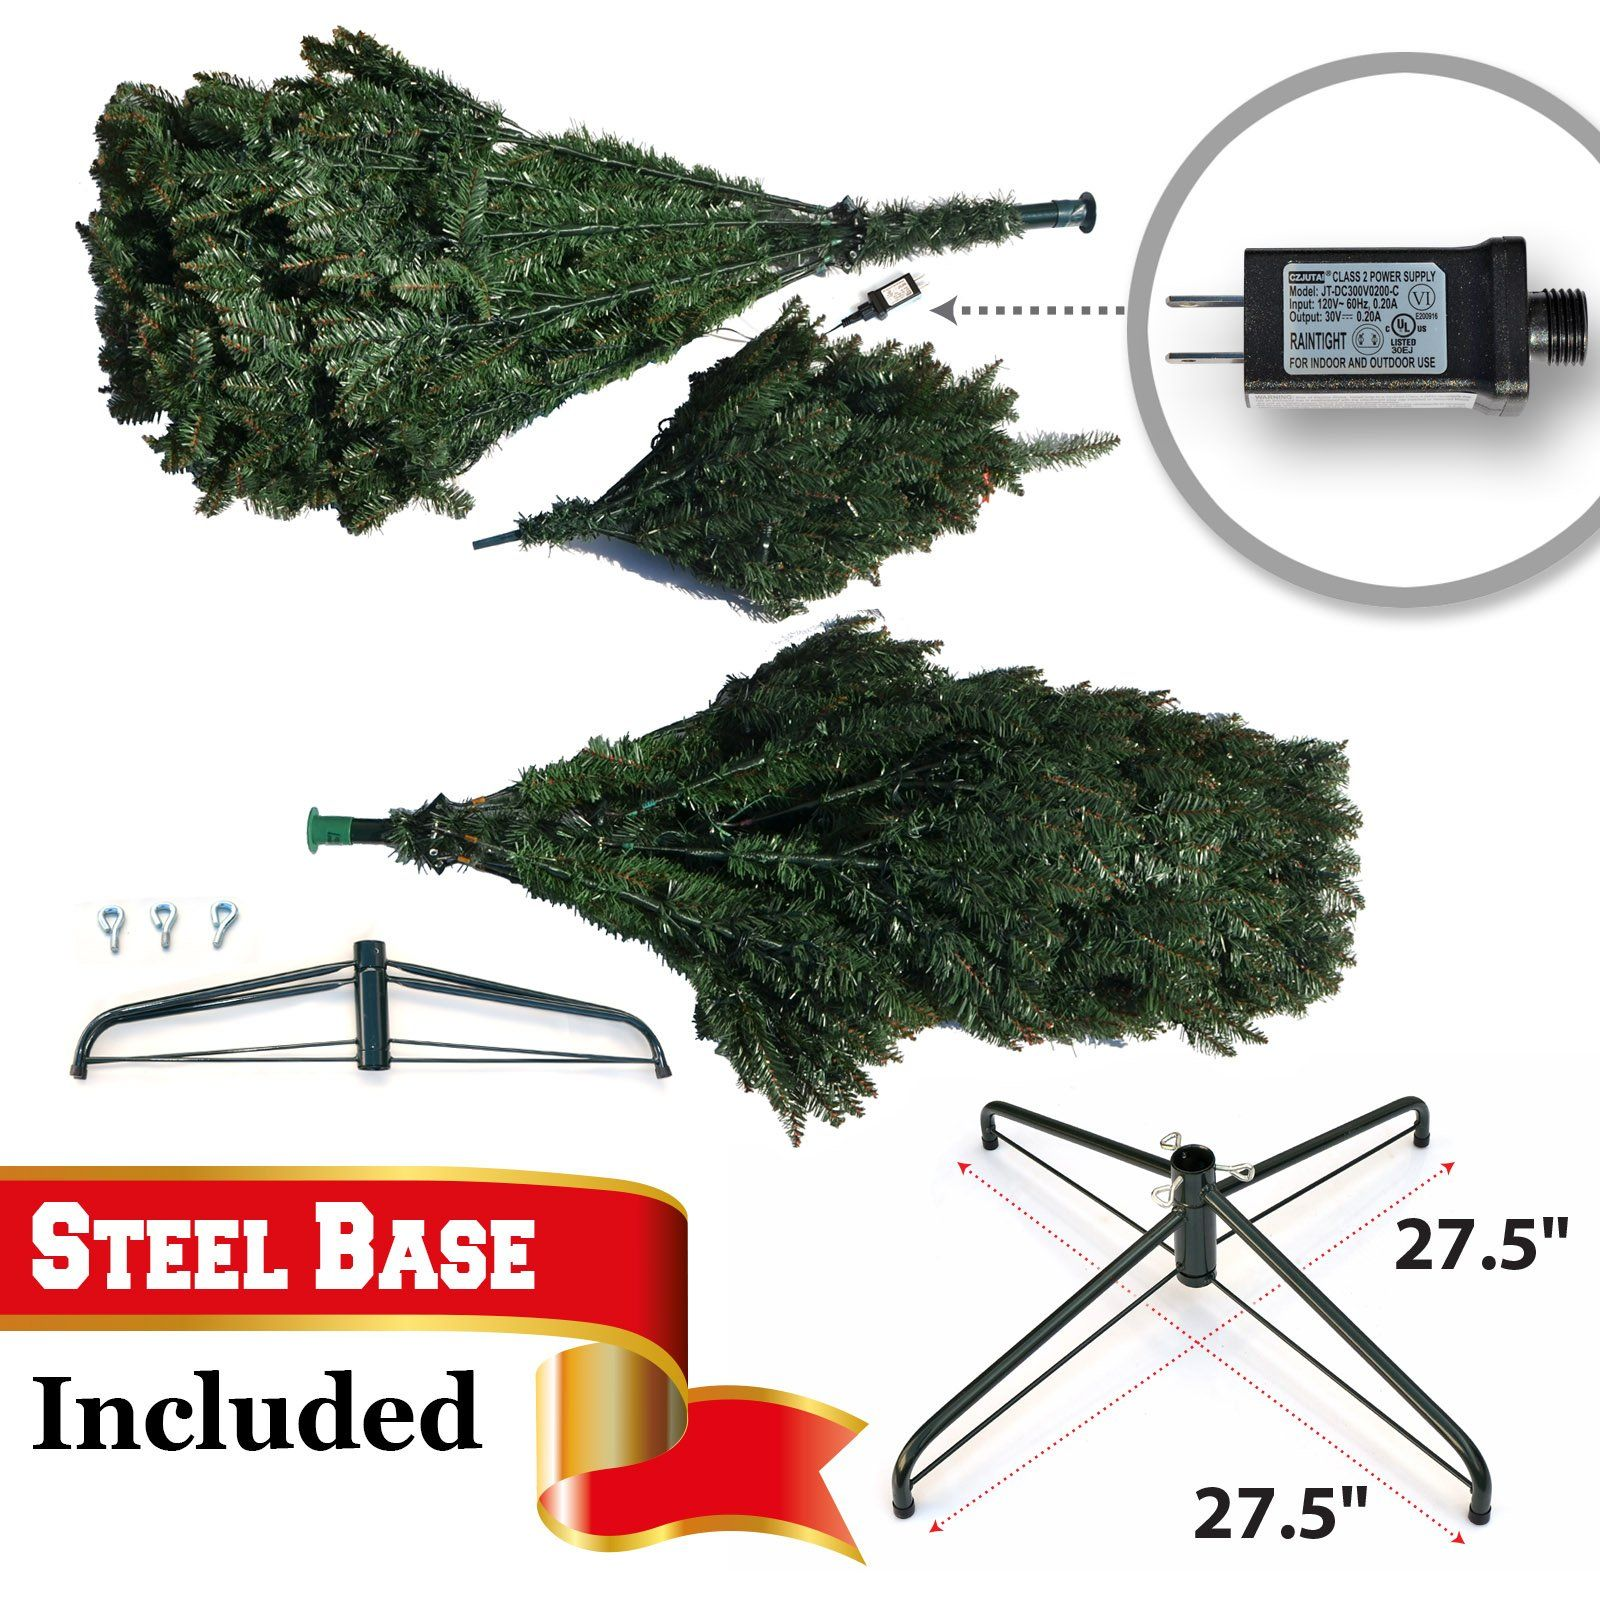 Benefitusa 7 5 Artificial Christmas Tree With Metal Stand Full Tree Xmas Holiday With 750 Clear Lights A Artificial Christmas Tree Xmas Holidays Christmas Tree